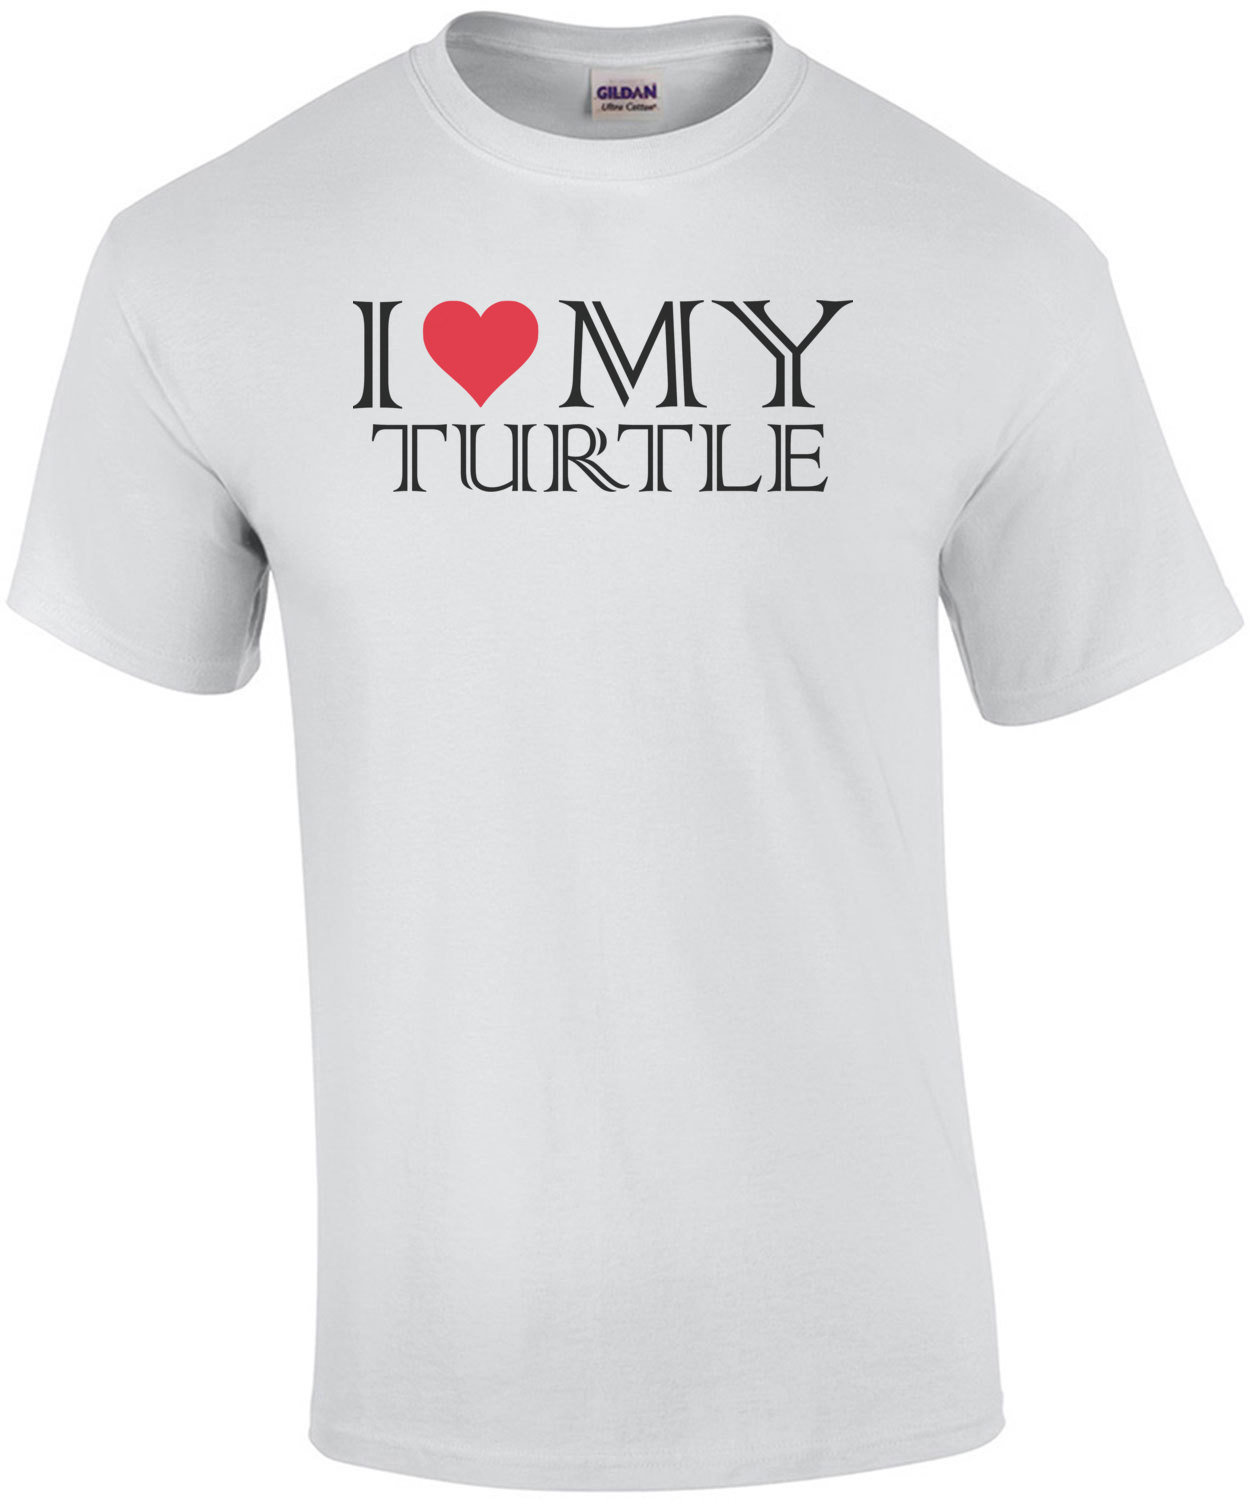 I love my turtle - turtle t-shirt